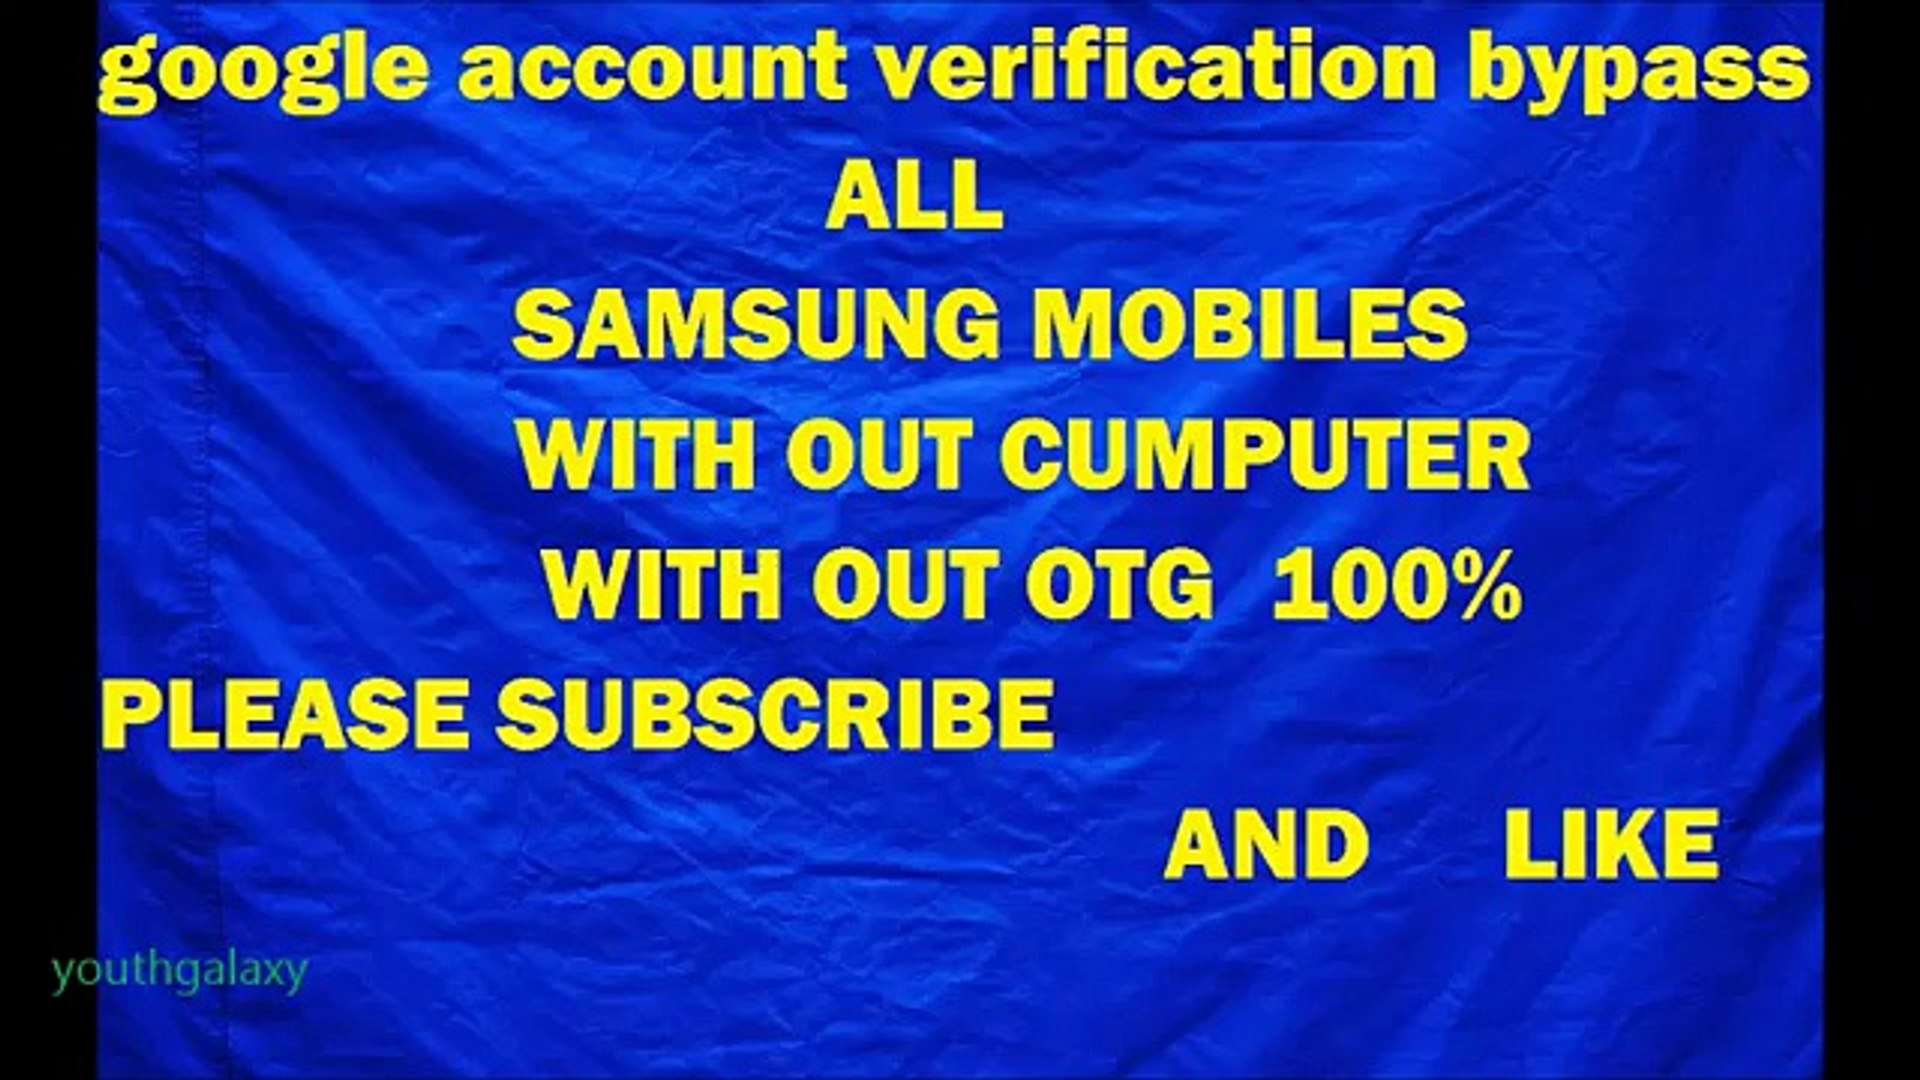 SAMSUNG Easy bypass google account verification with out OTG+SIDESYNC --HD